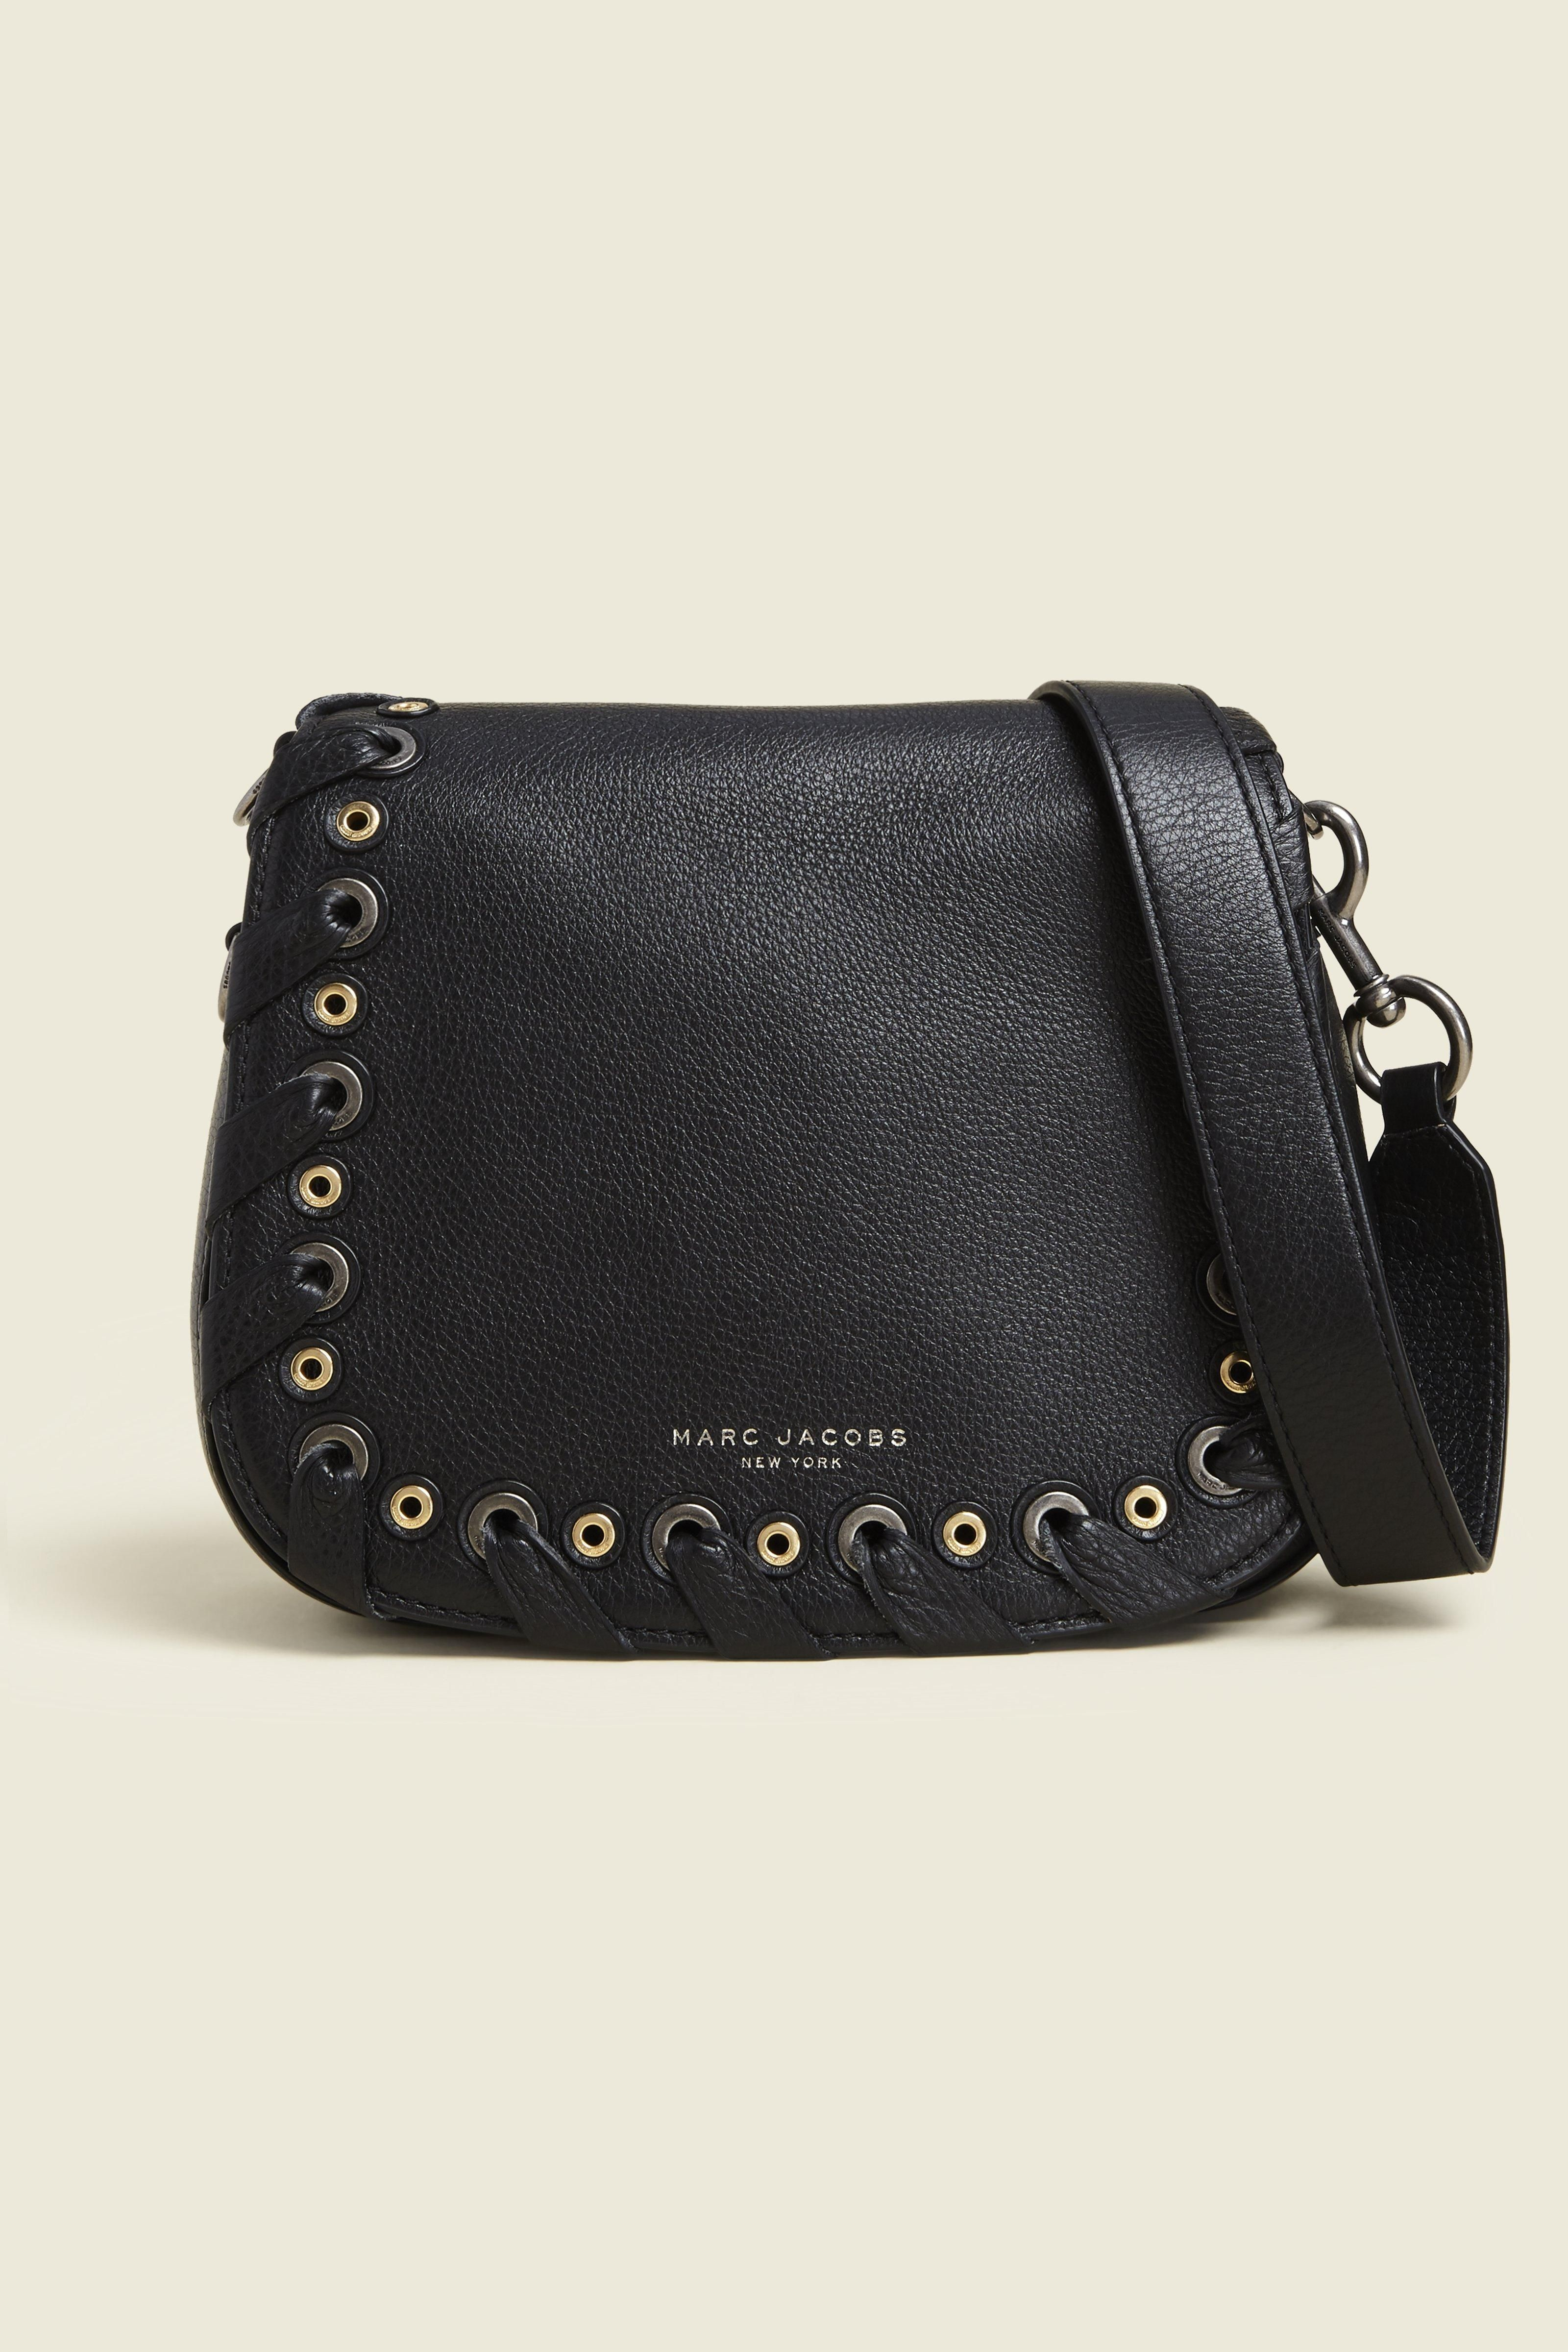 073108ae90bc MARC JACOBS Grommet Small Nomad.  marcjacobs  bags